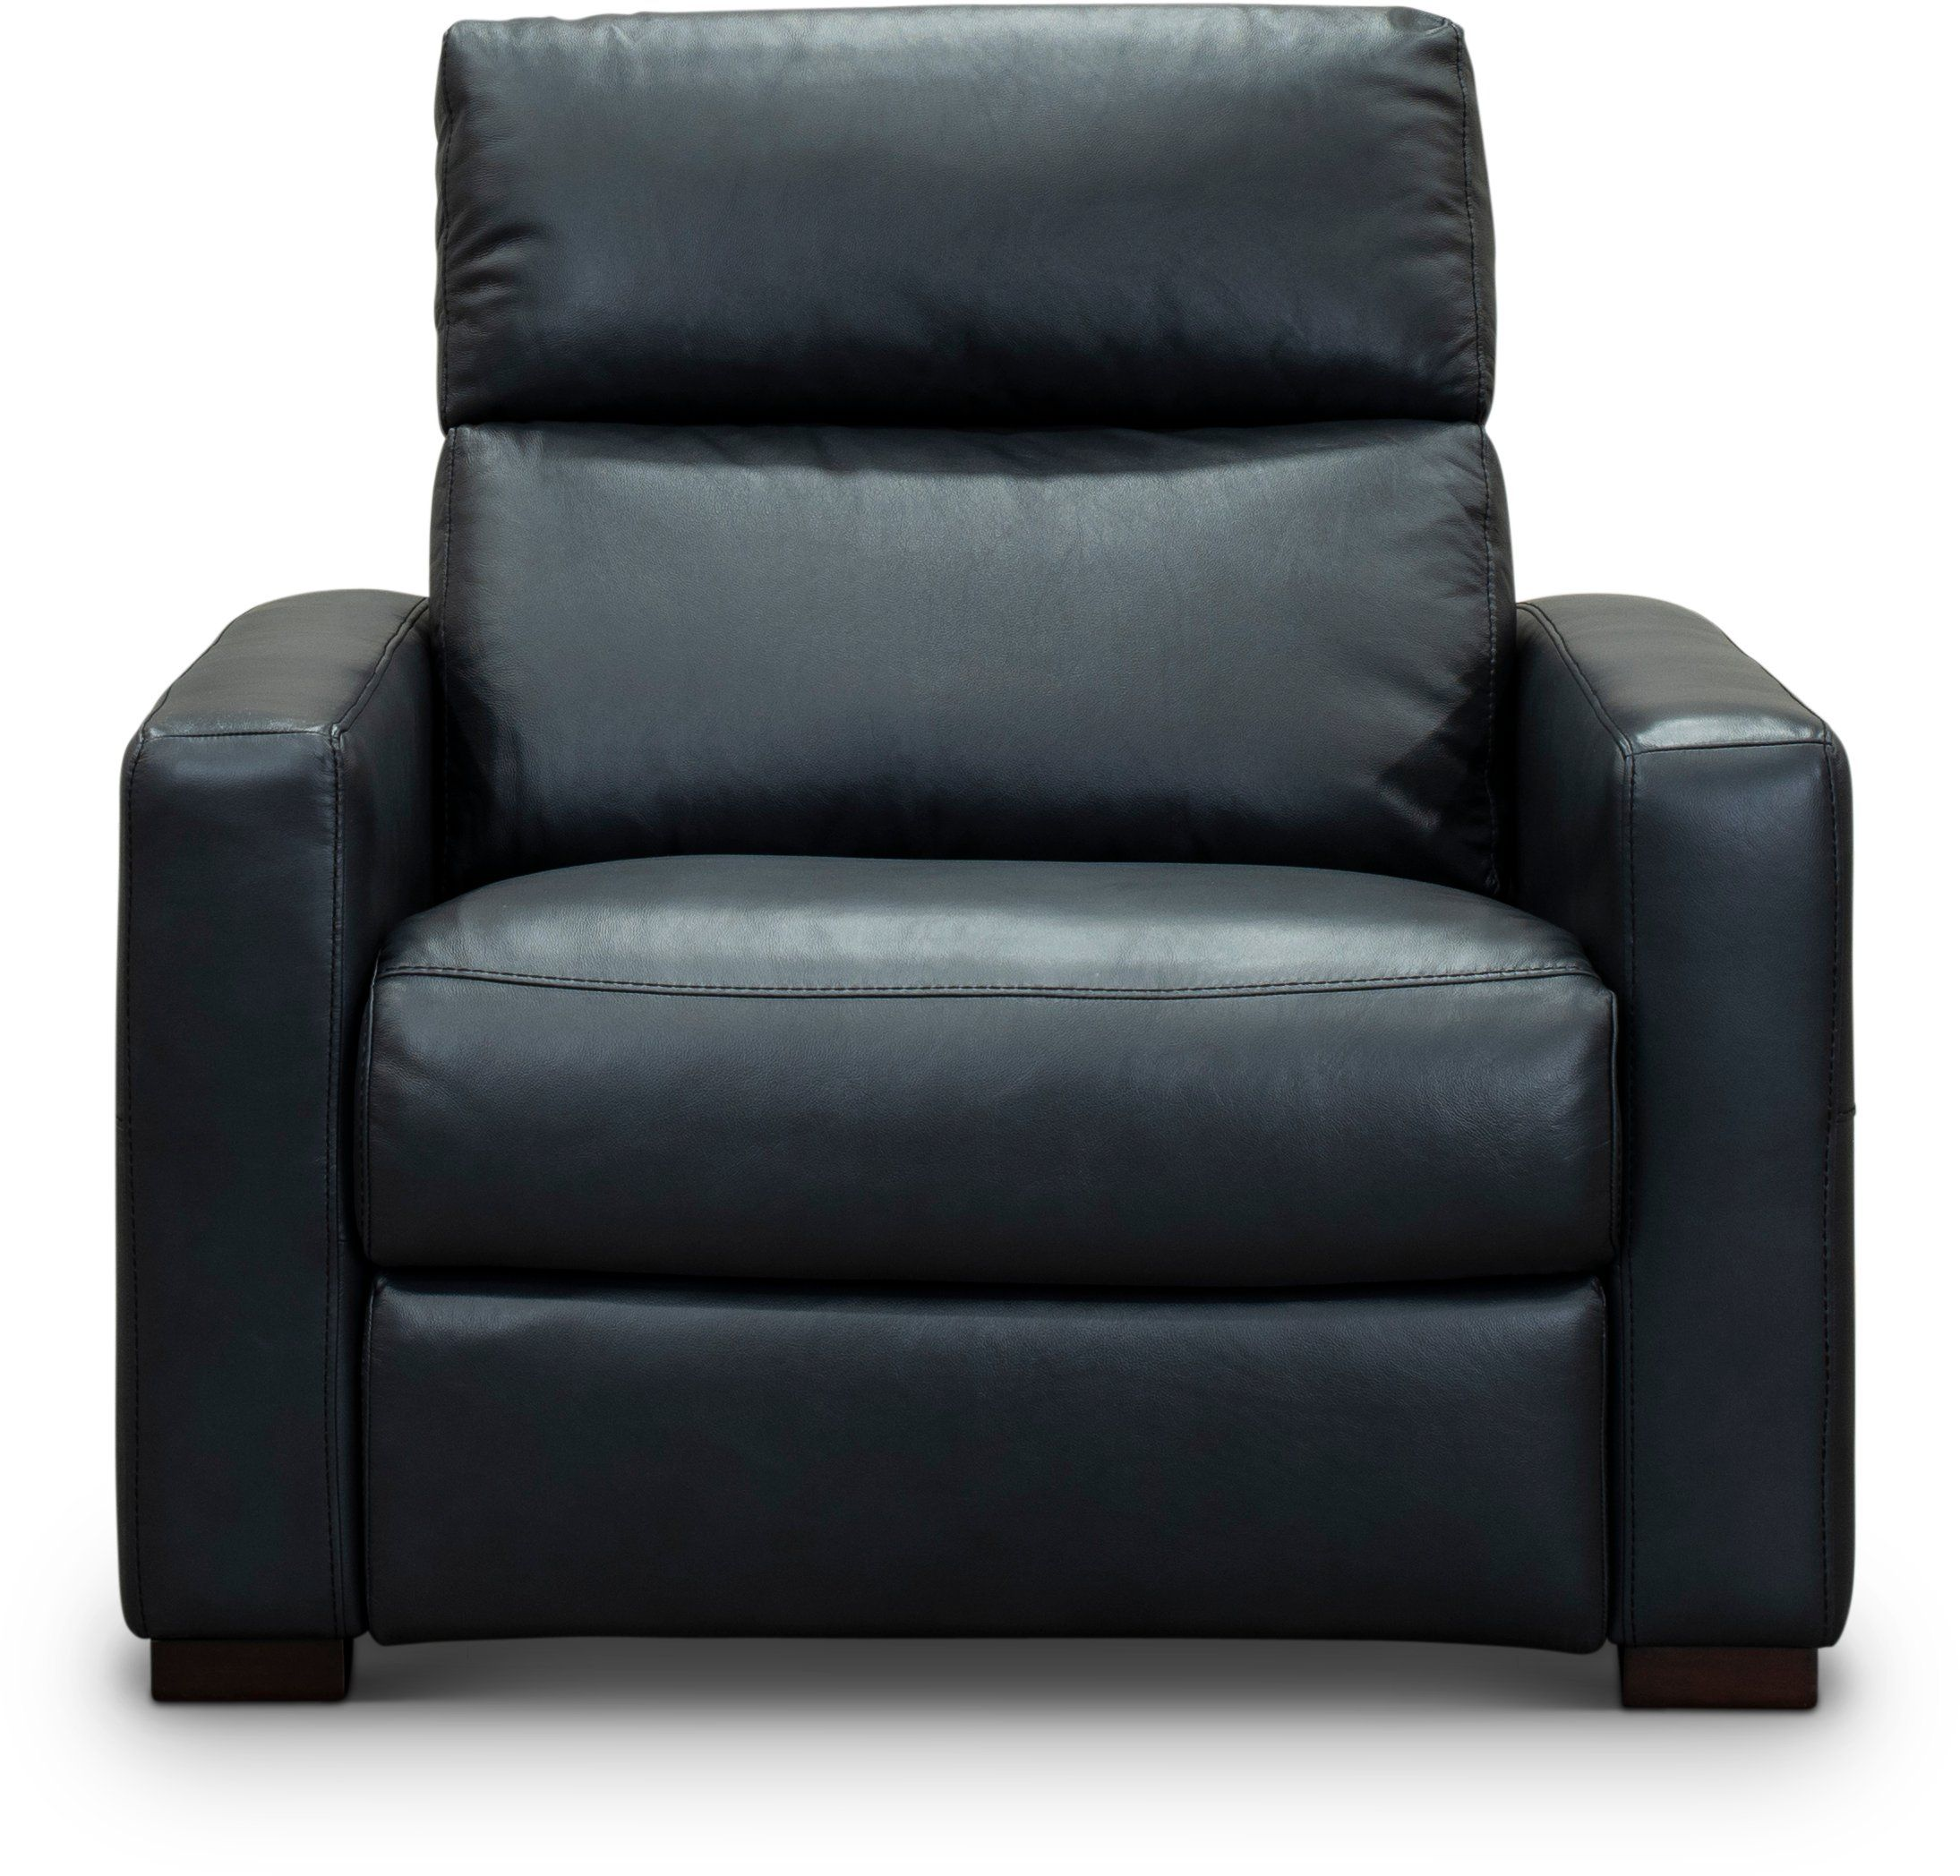 Navy Blue LeatherMatch Power Recliner Chair and a Half